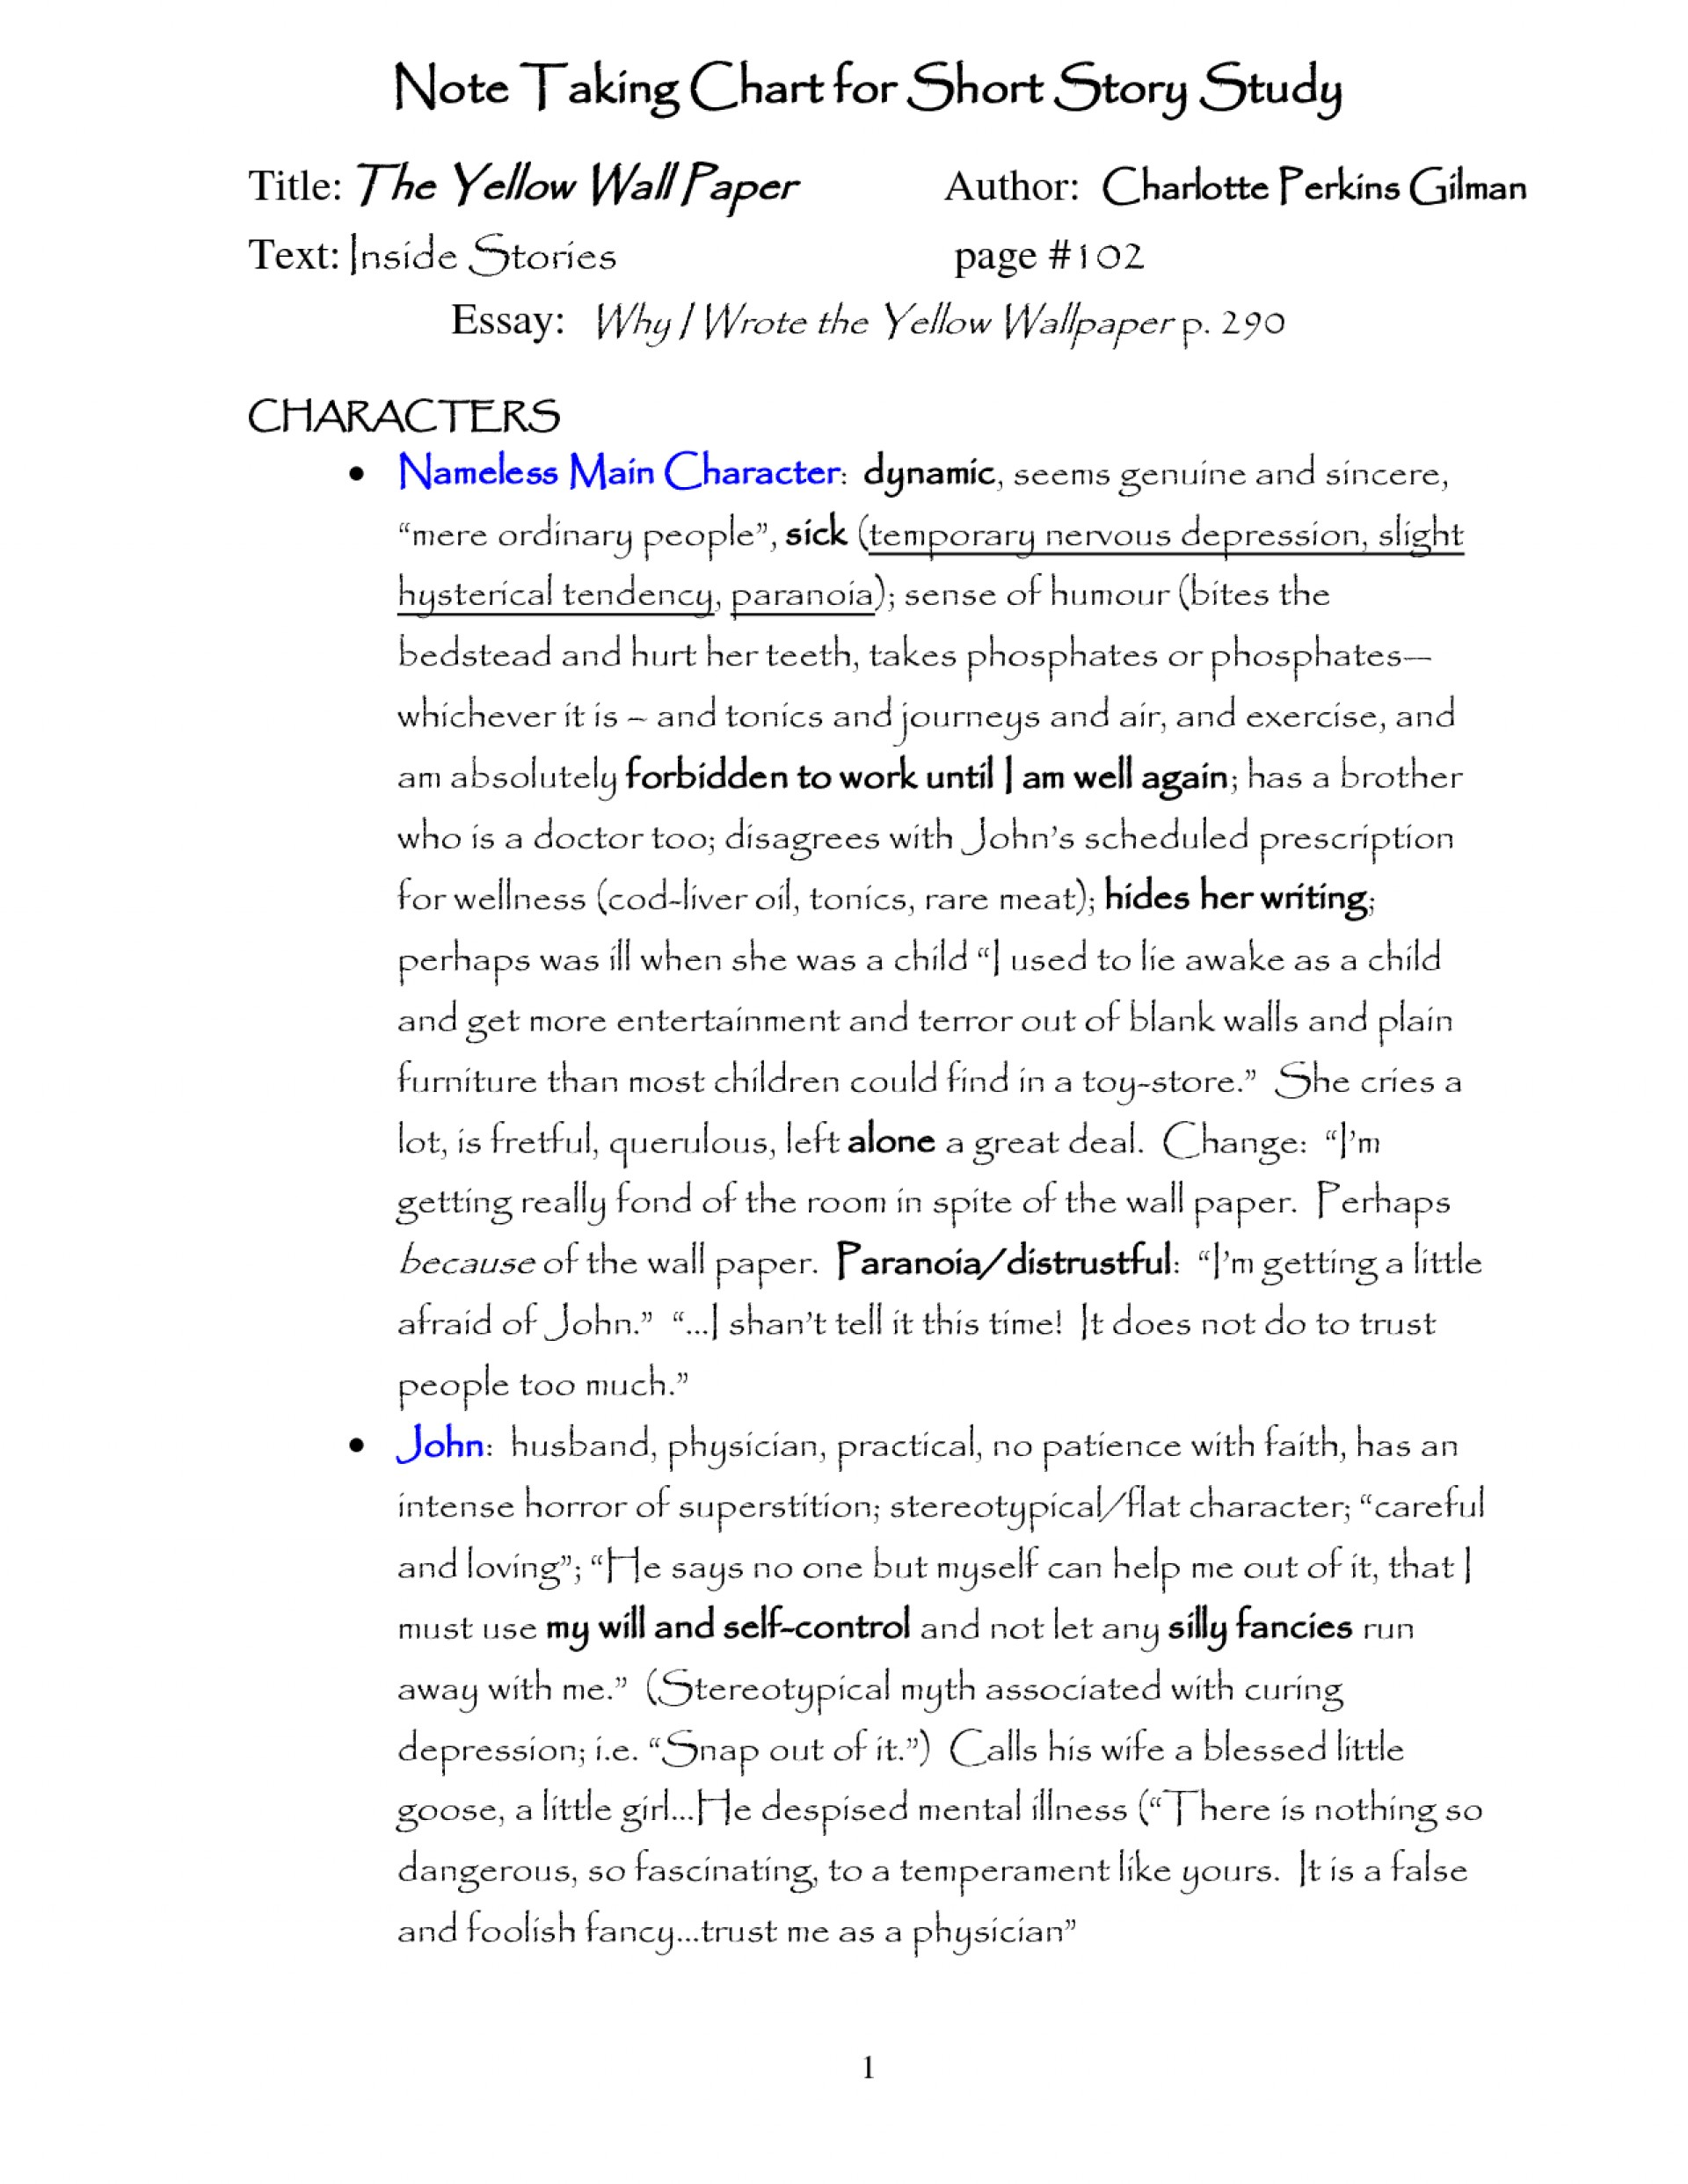 017 Cmydpl Literary Criticism Essay Excellent On The Great Gatsby Ideas Conclusion Sample 1920